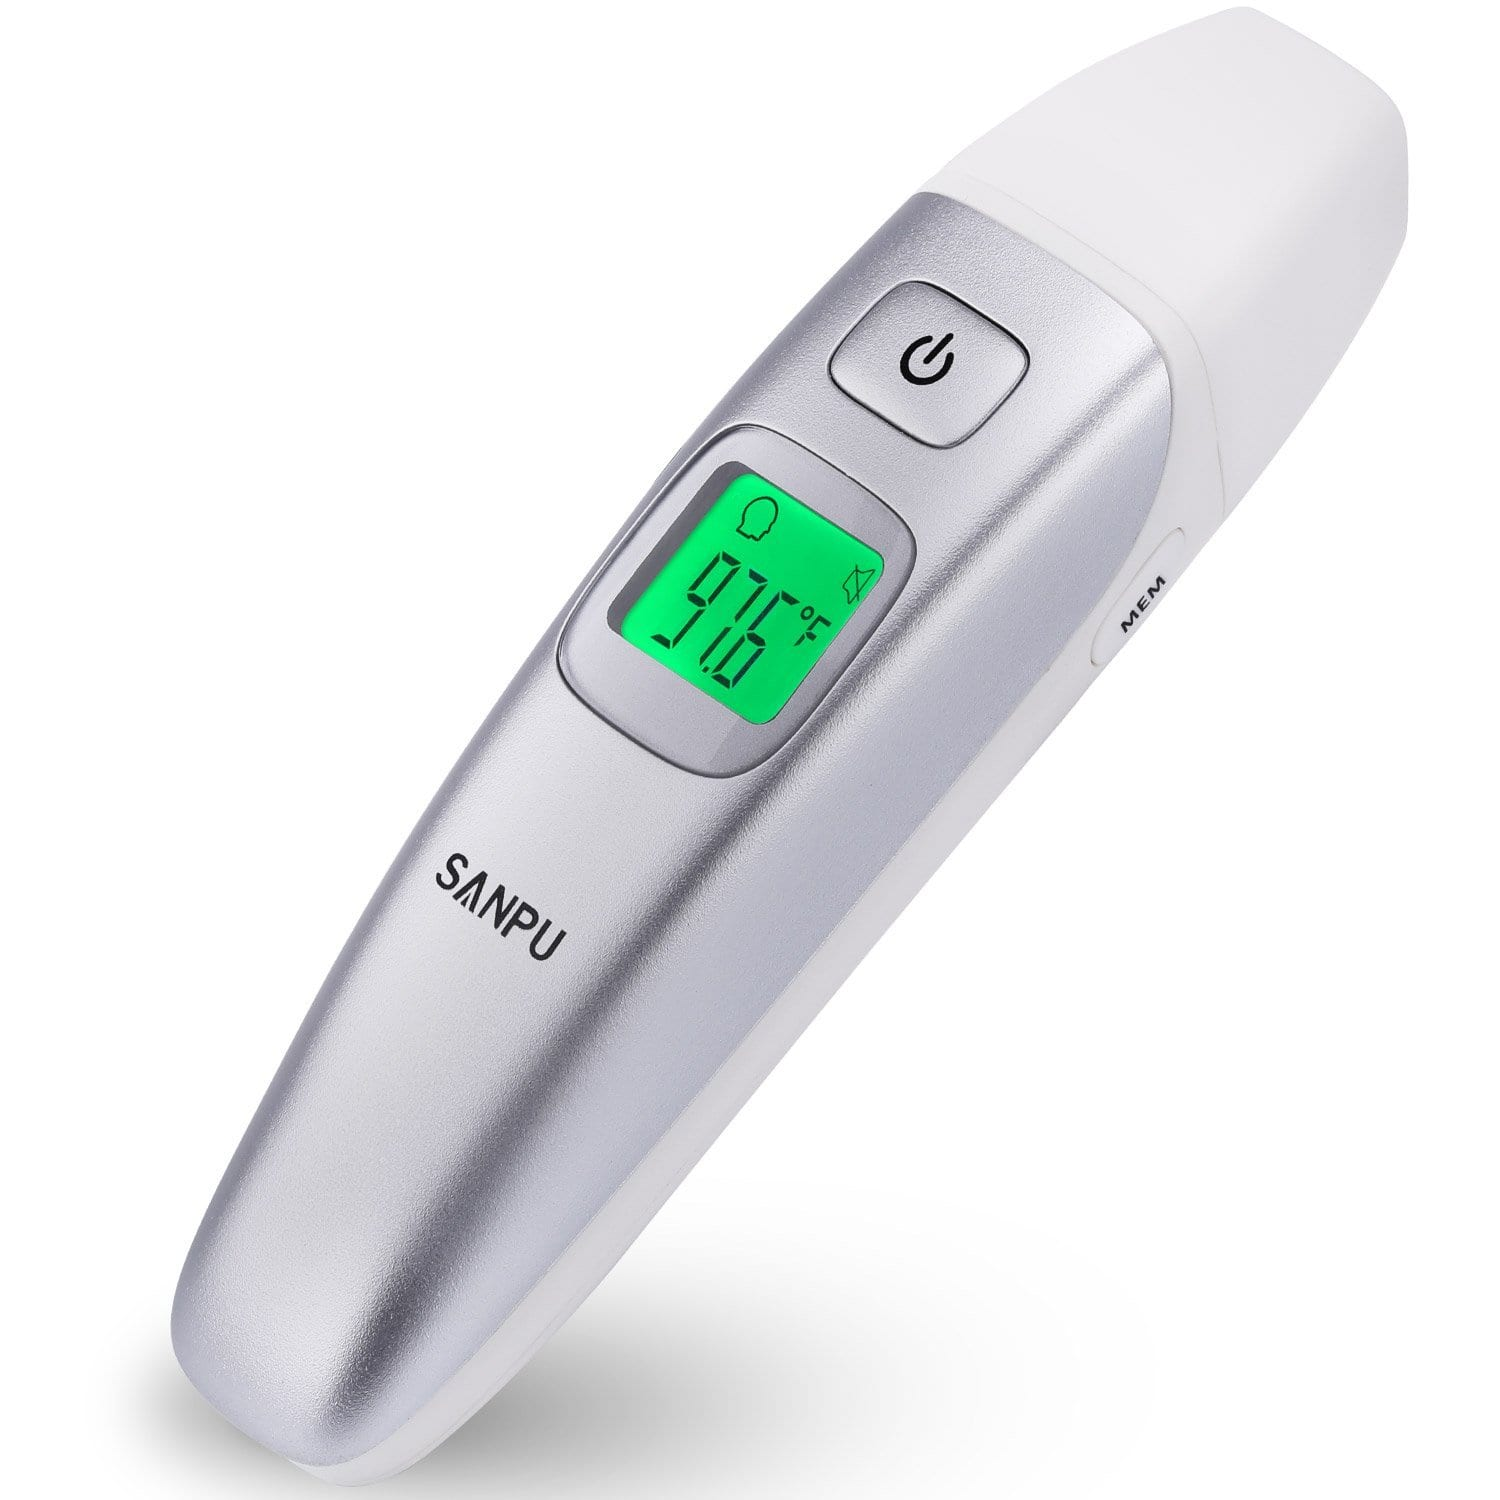 SANPU Infrared Forehead and Ear Thermometer $11.75 + free s/h